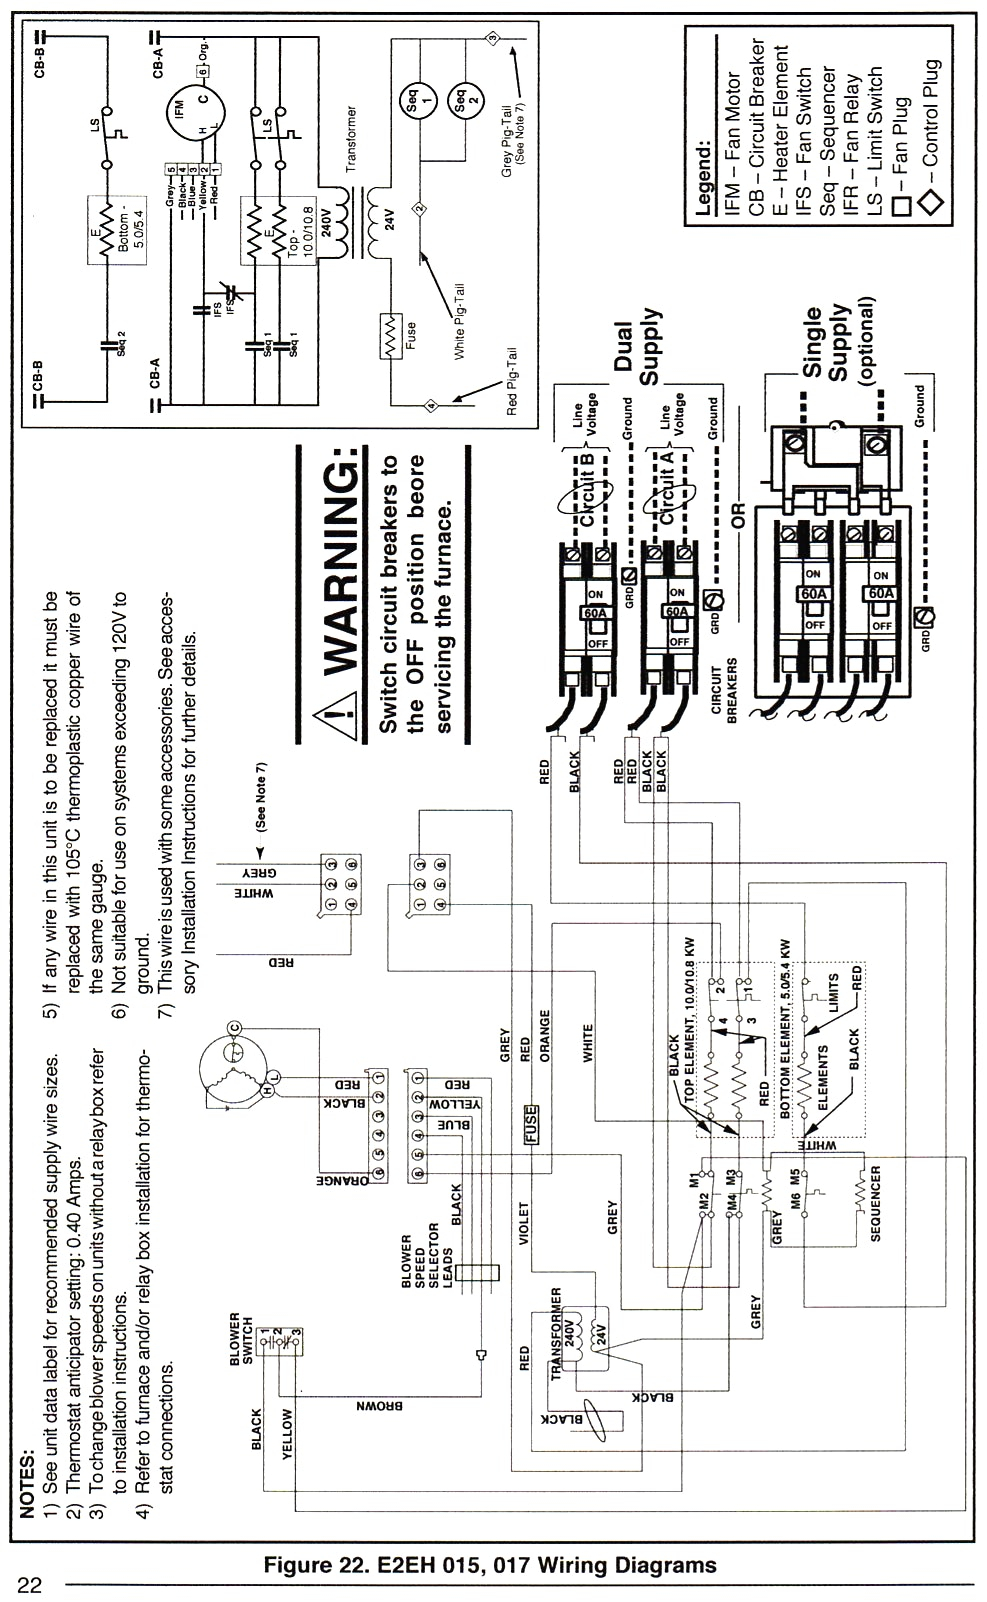 medium resolution of old nordyne furnaces wiring diagram image wiring diagram centre nordyne thermostat wiring diagram nordyne gas furnace